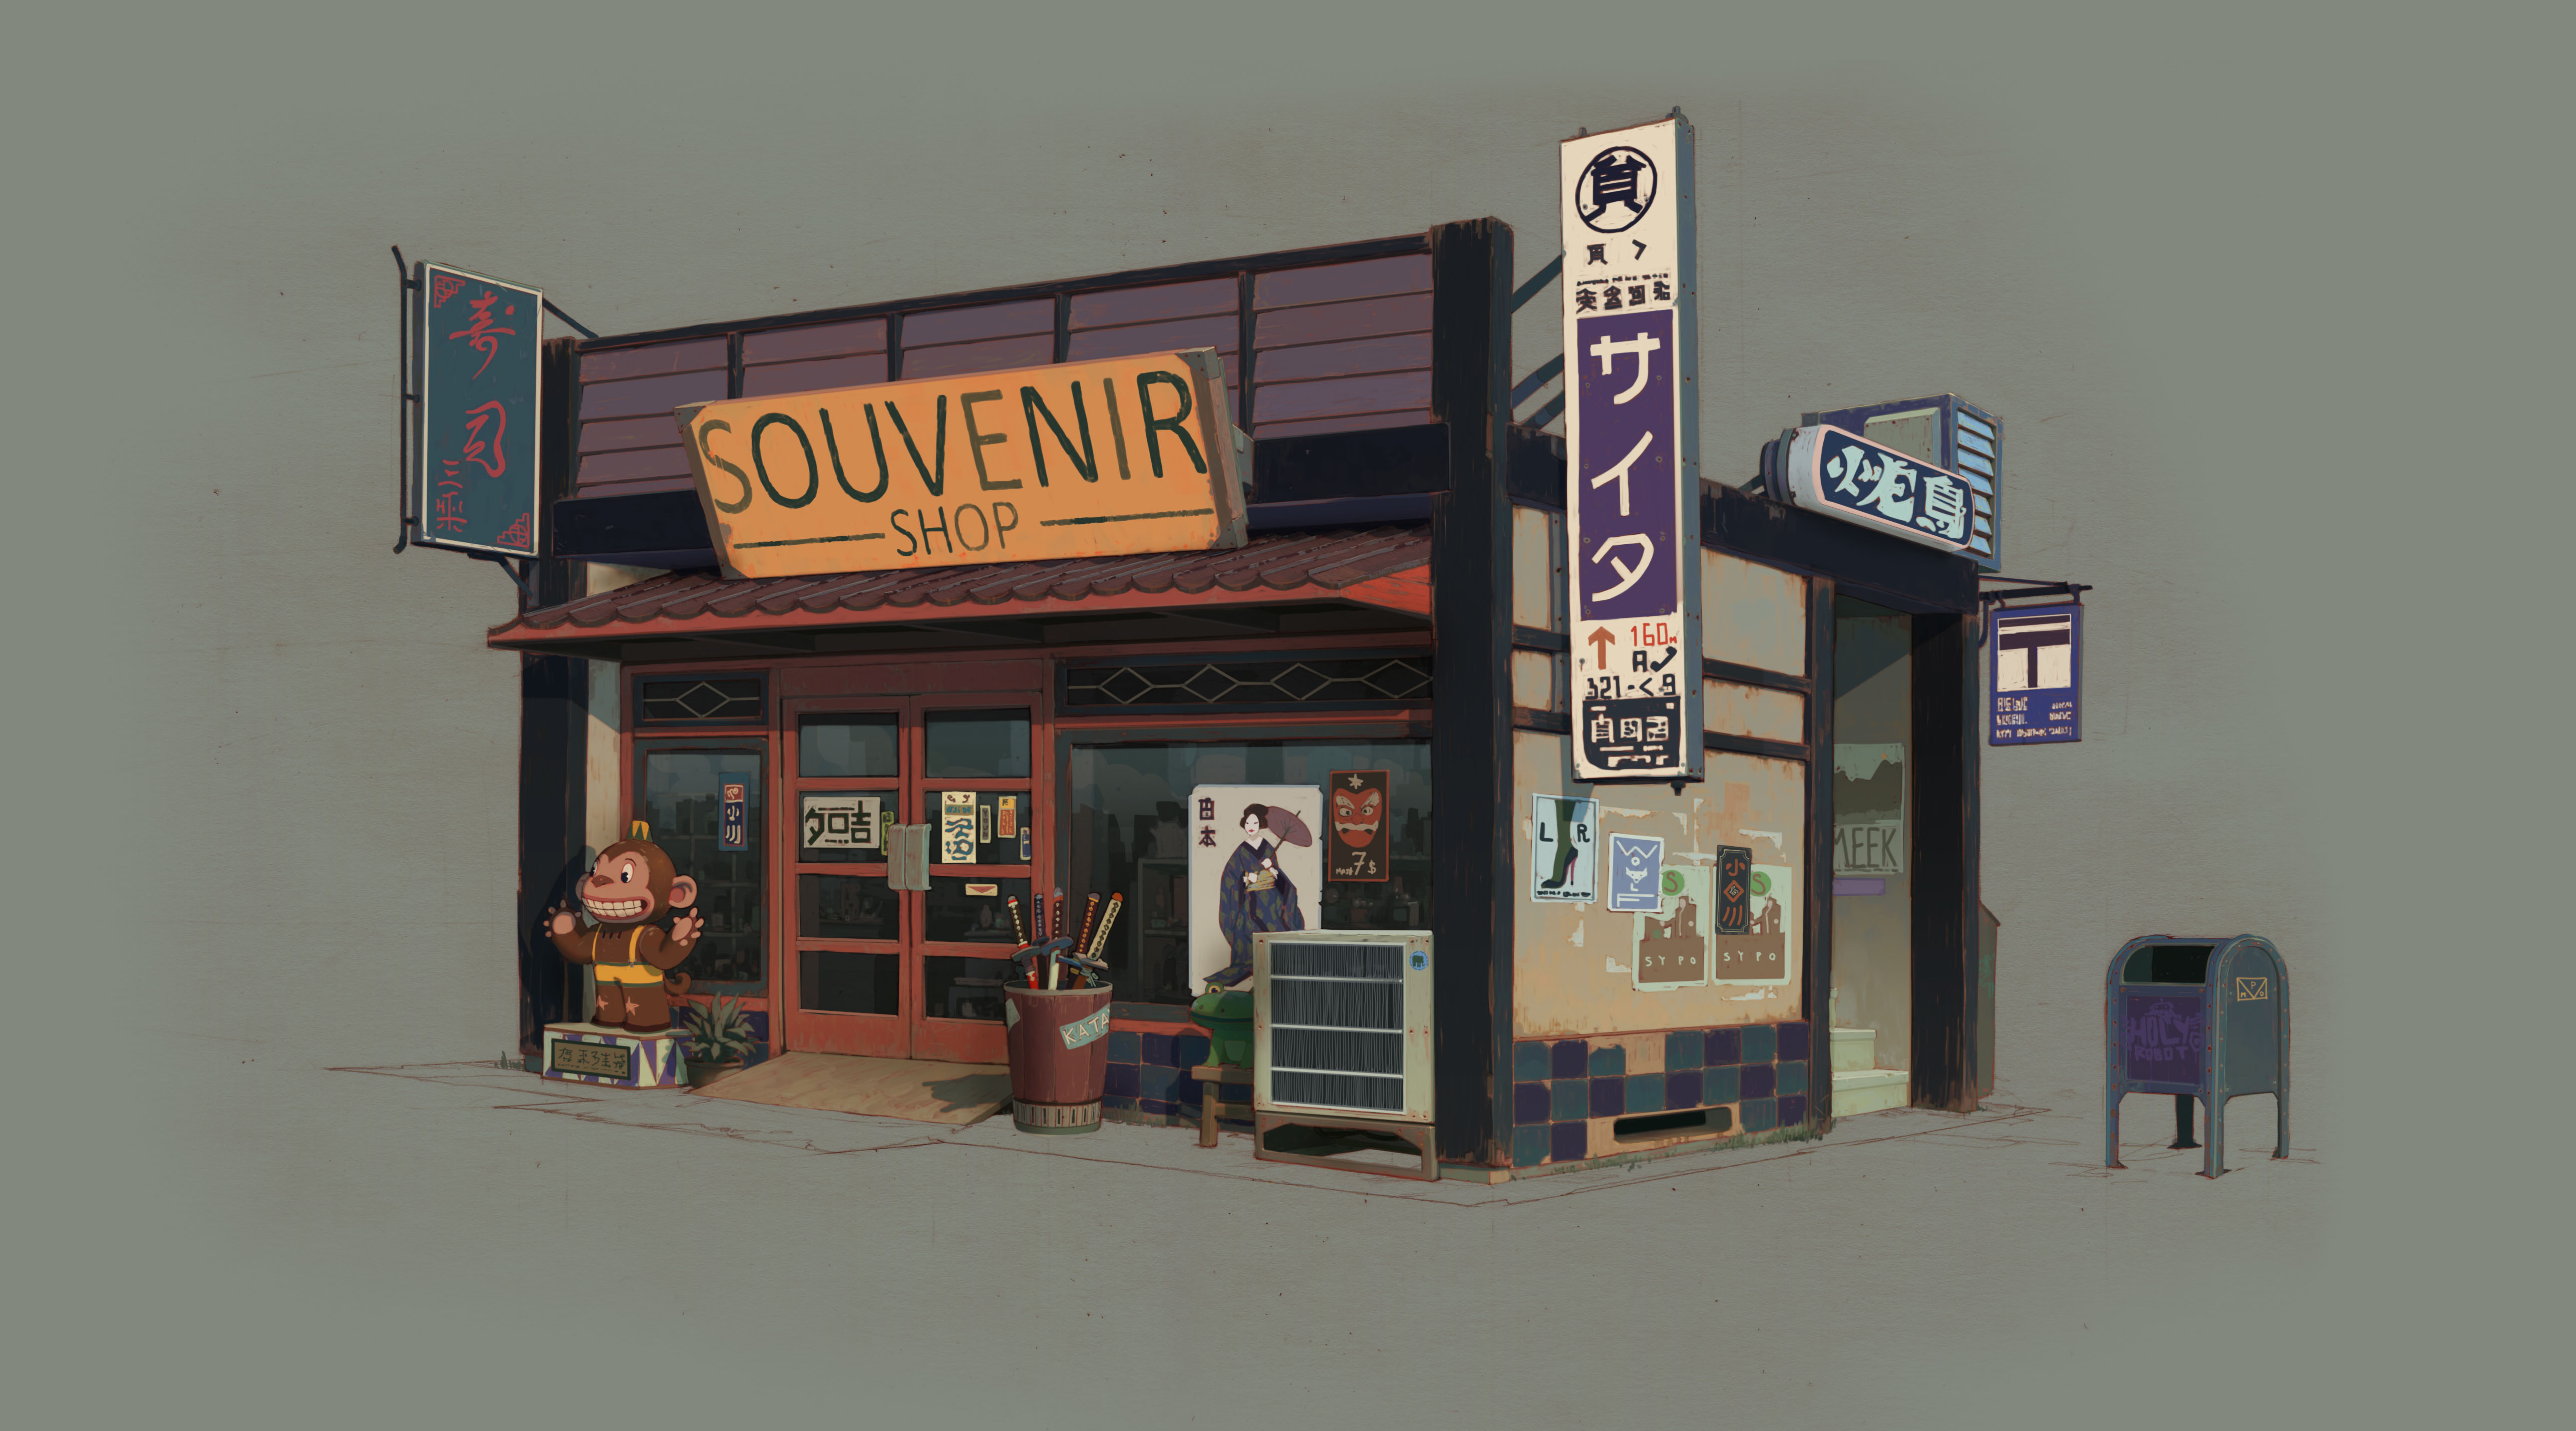 Sunset Overdrive Souvenir Shop by Vasili Zorin